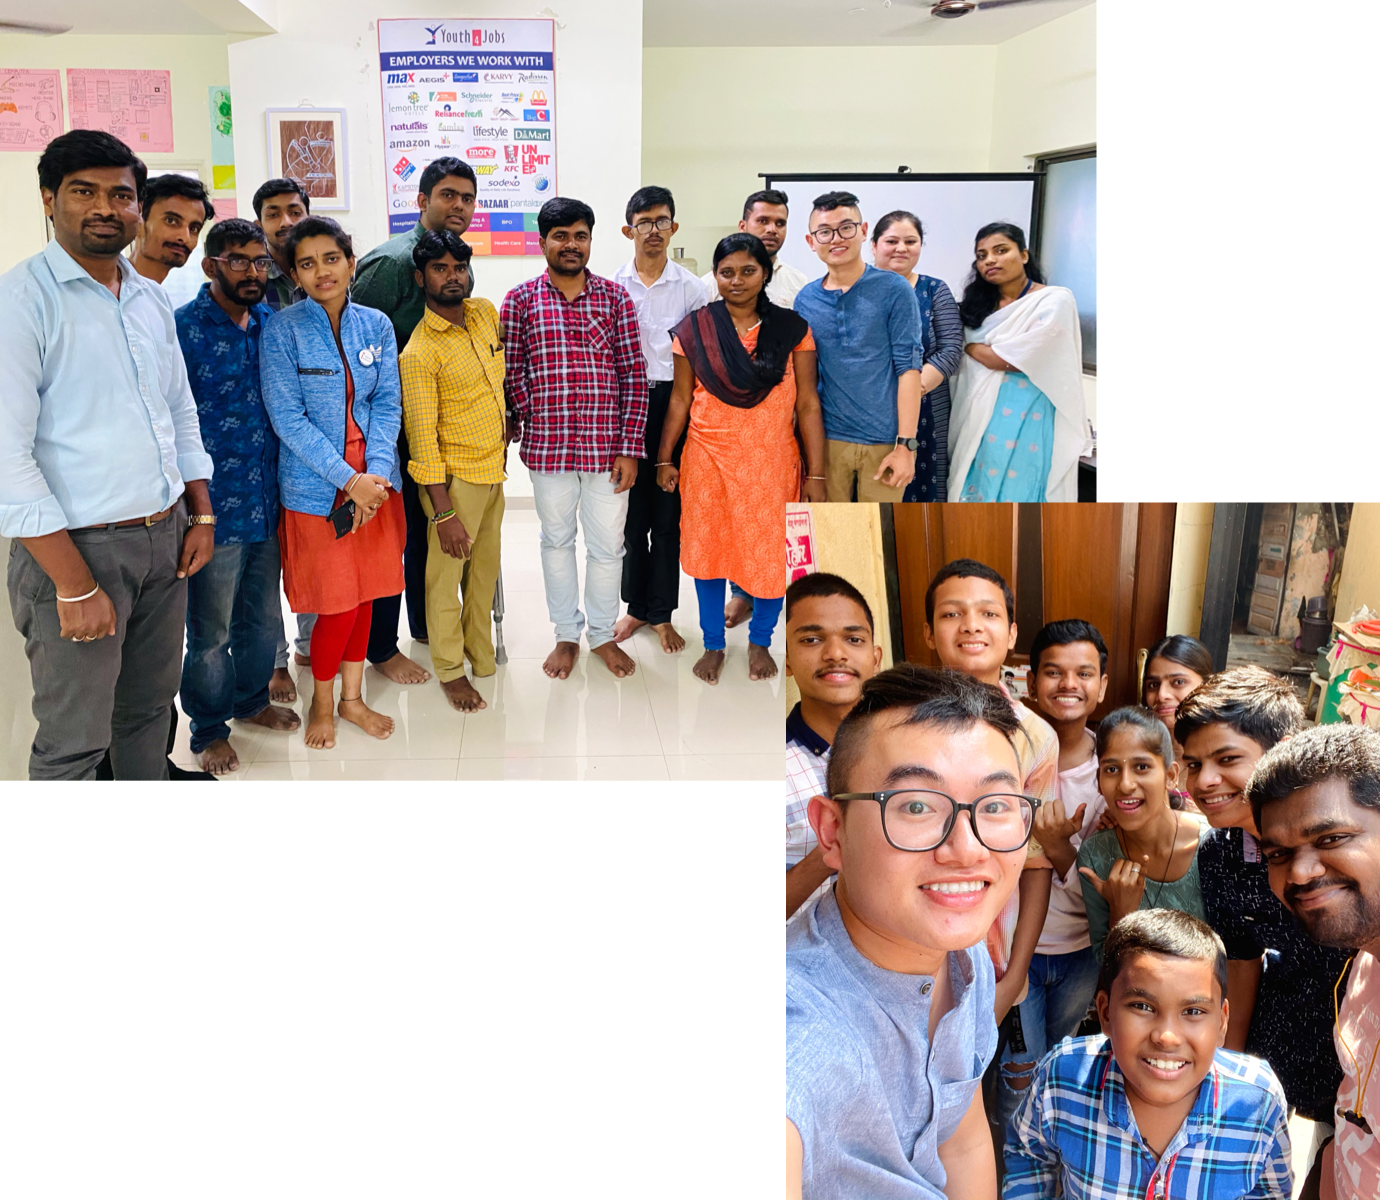 Collage of 2 pictures of ace and people he met in India. First picture he is standing with a group of people at the disability center. Second picture he is taking a selfie with kids at the learning center